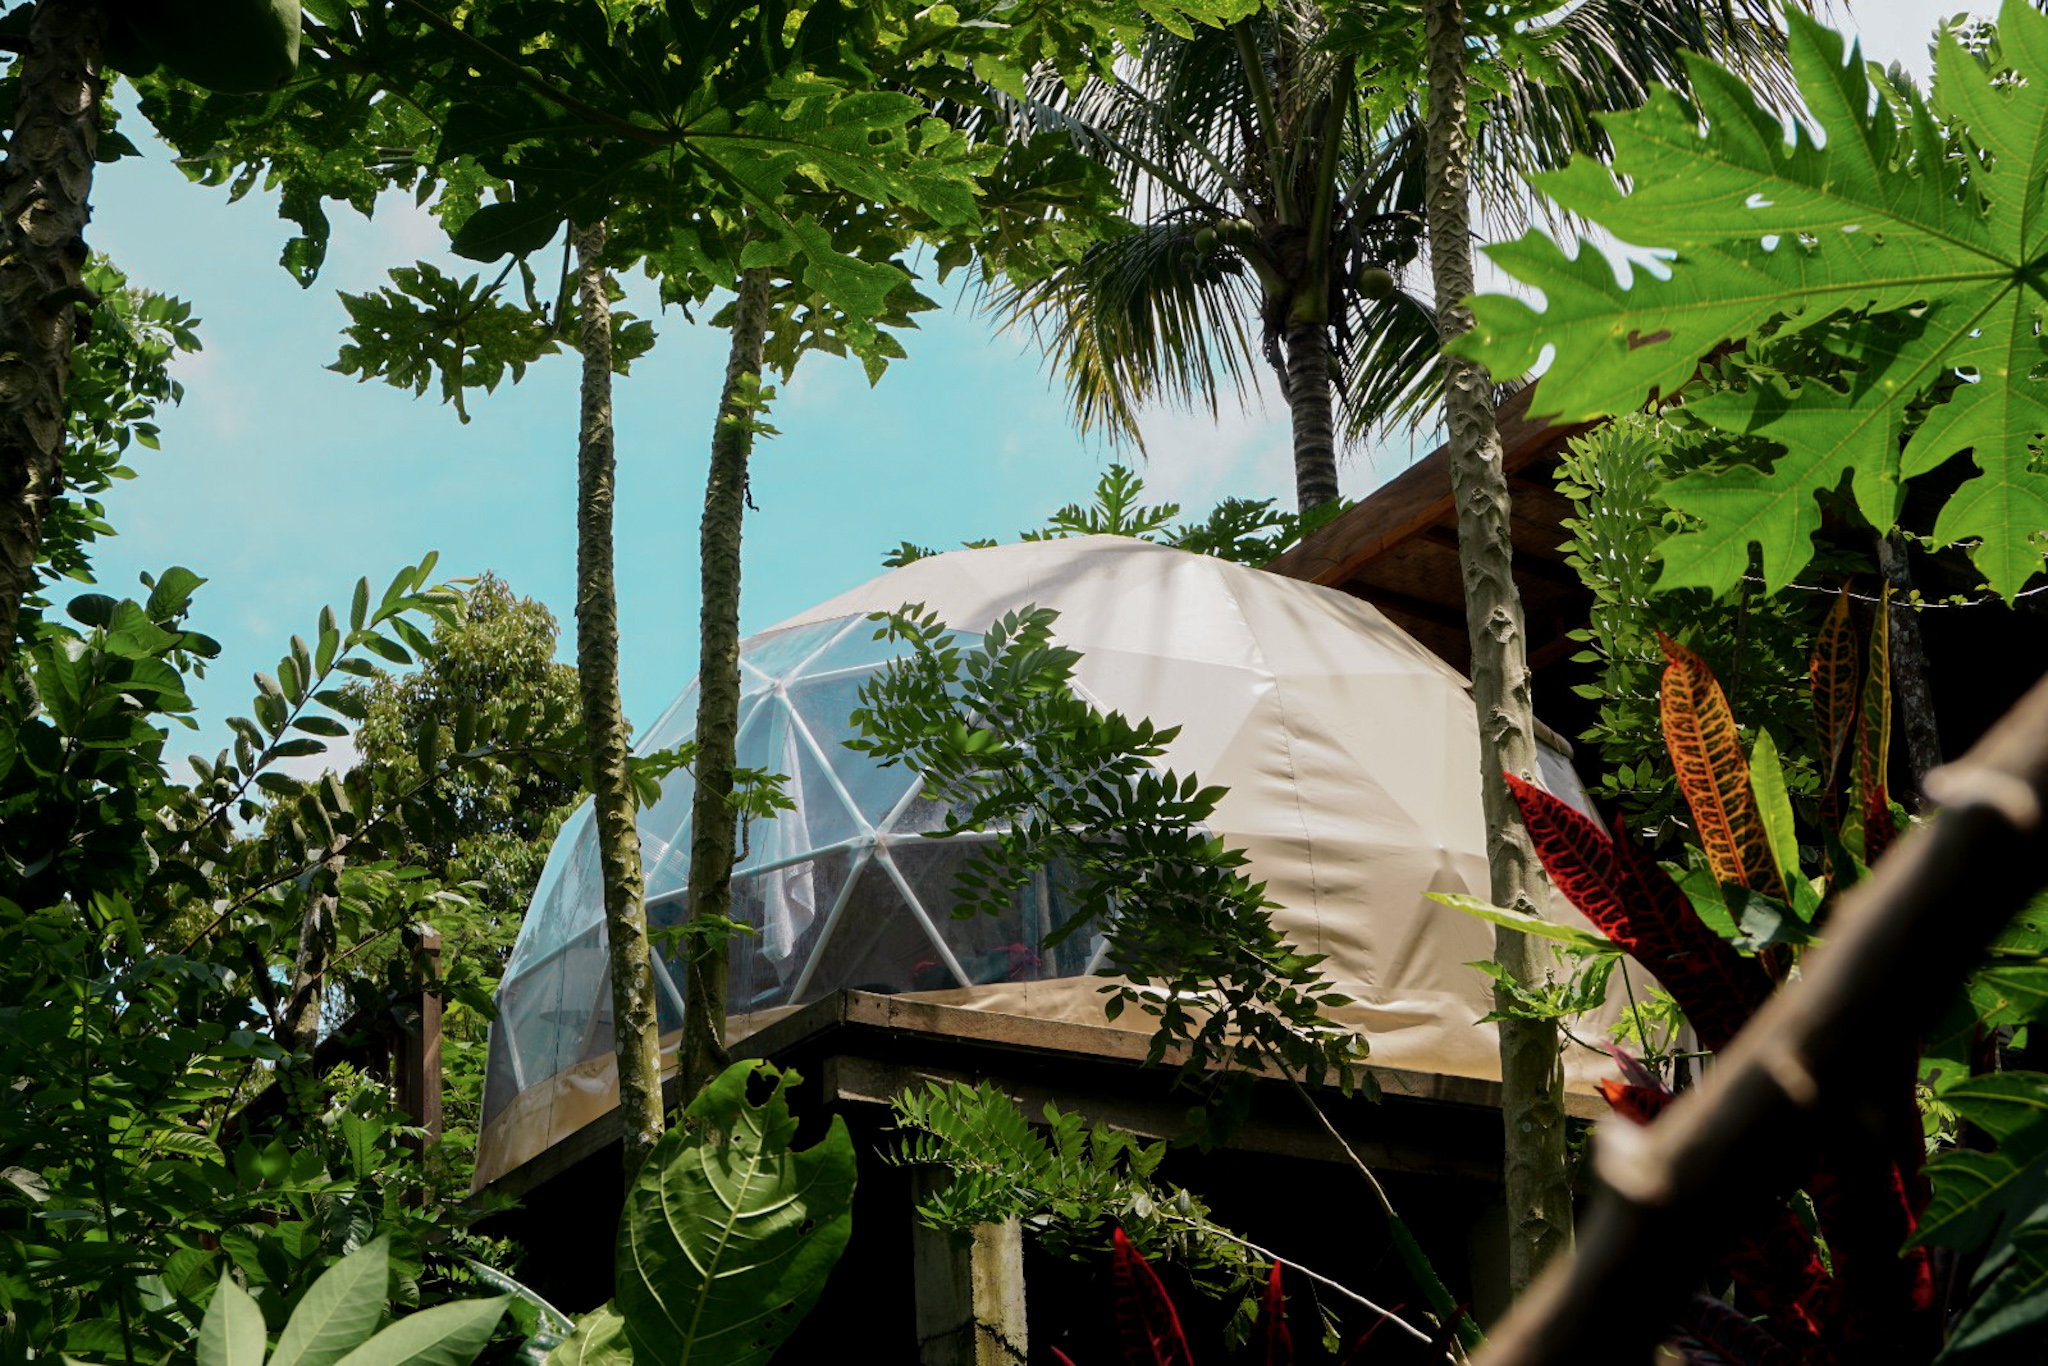 Family Holiday in the Forest at Bali Jungle Camping